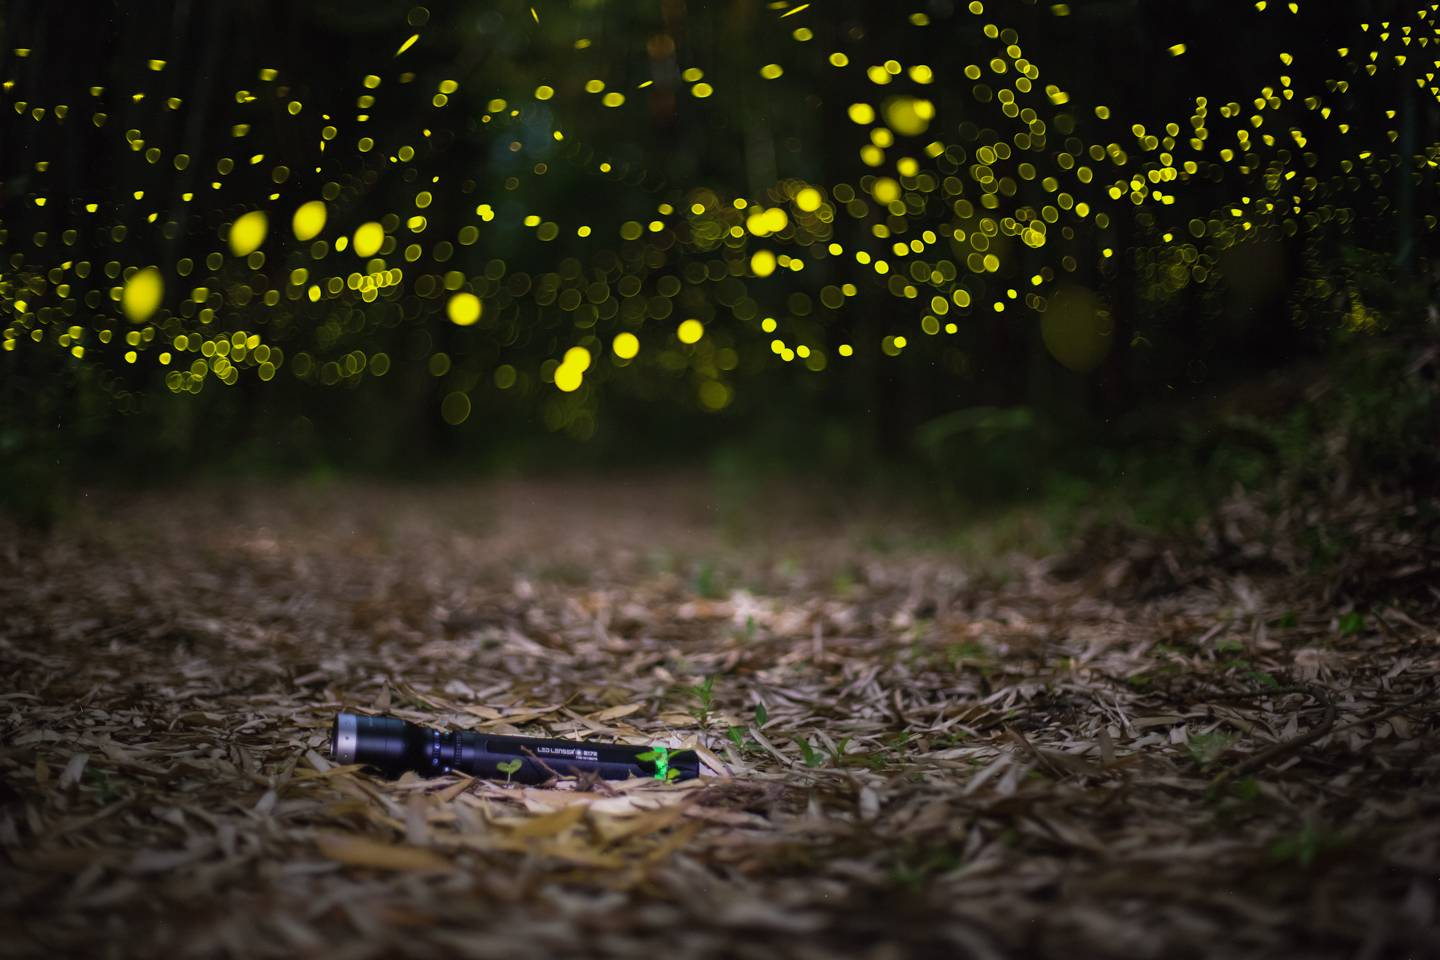 LED Lenser fireflies